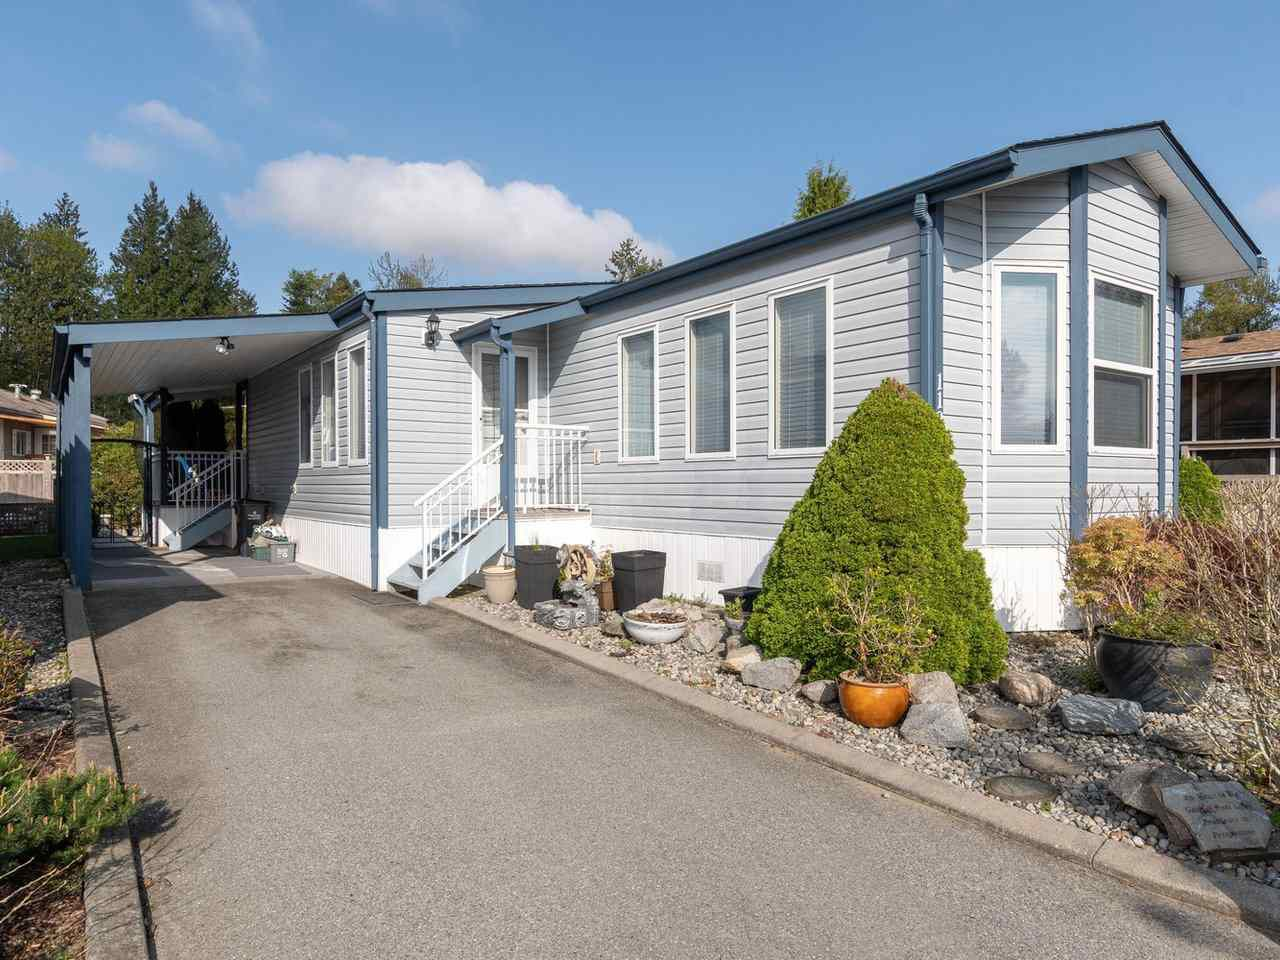 Popular 'Meadows Highland Co-operative Park', 2004 built manufactured home, 1115sq.ft, 2 bedroom, 2 bath & air conditioning...Room to park 3 cars!